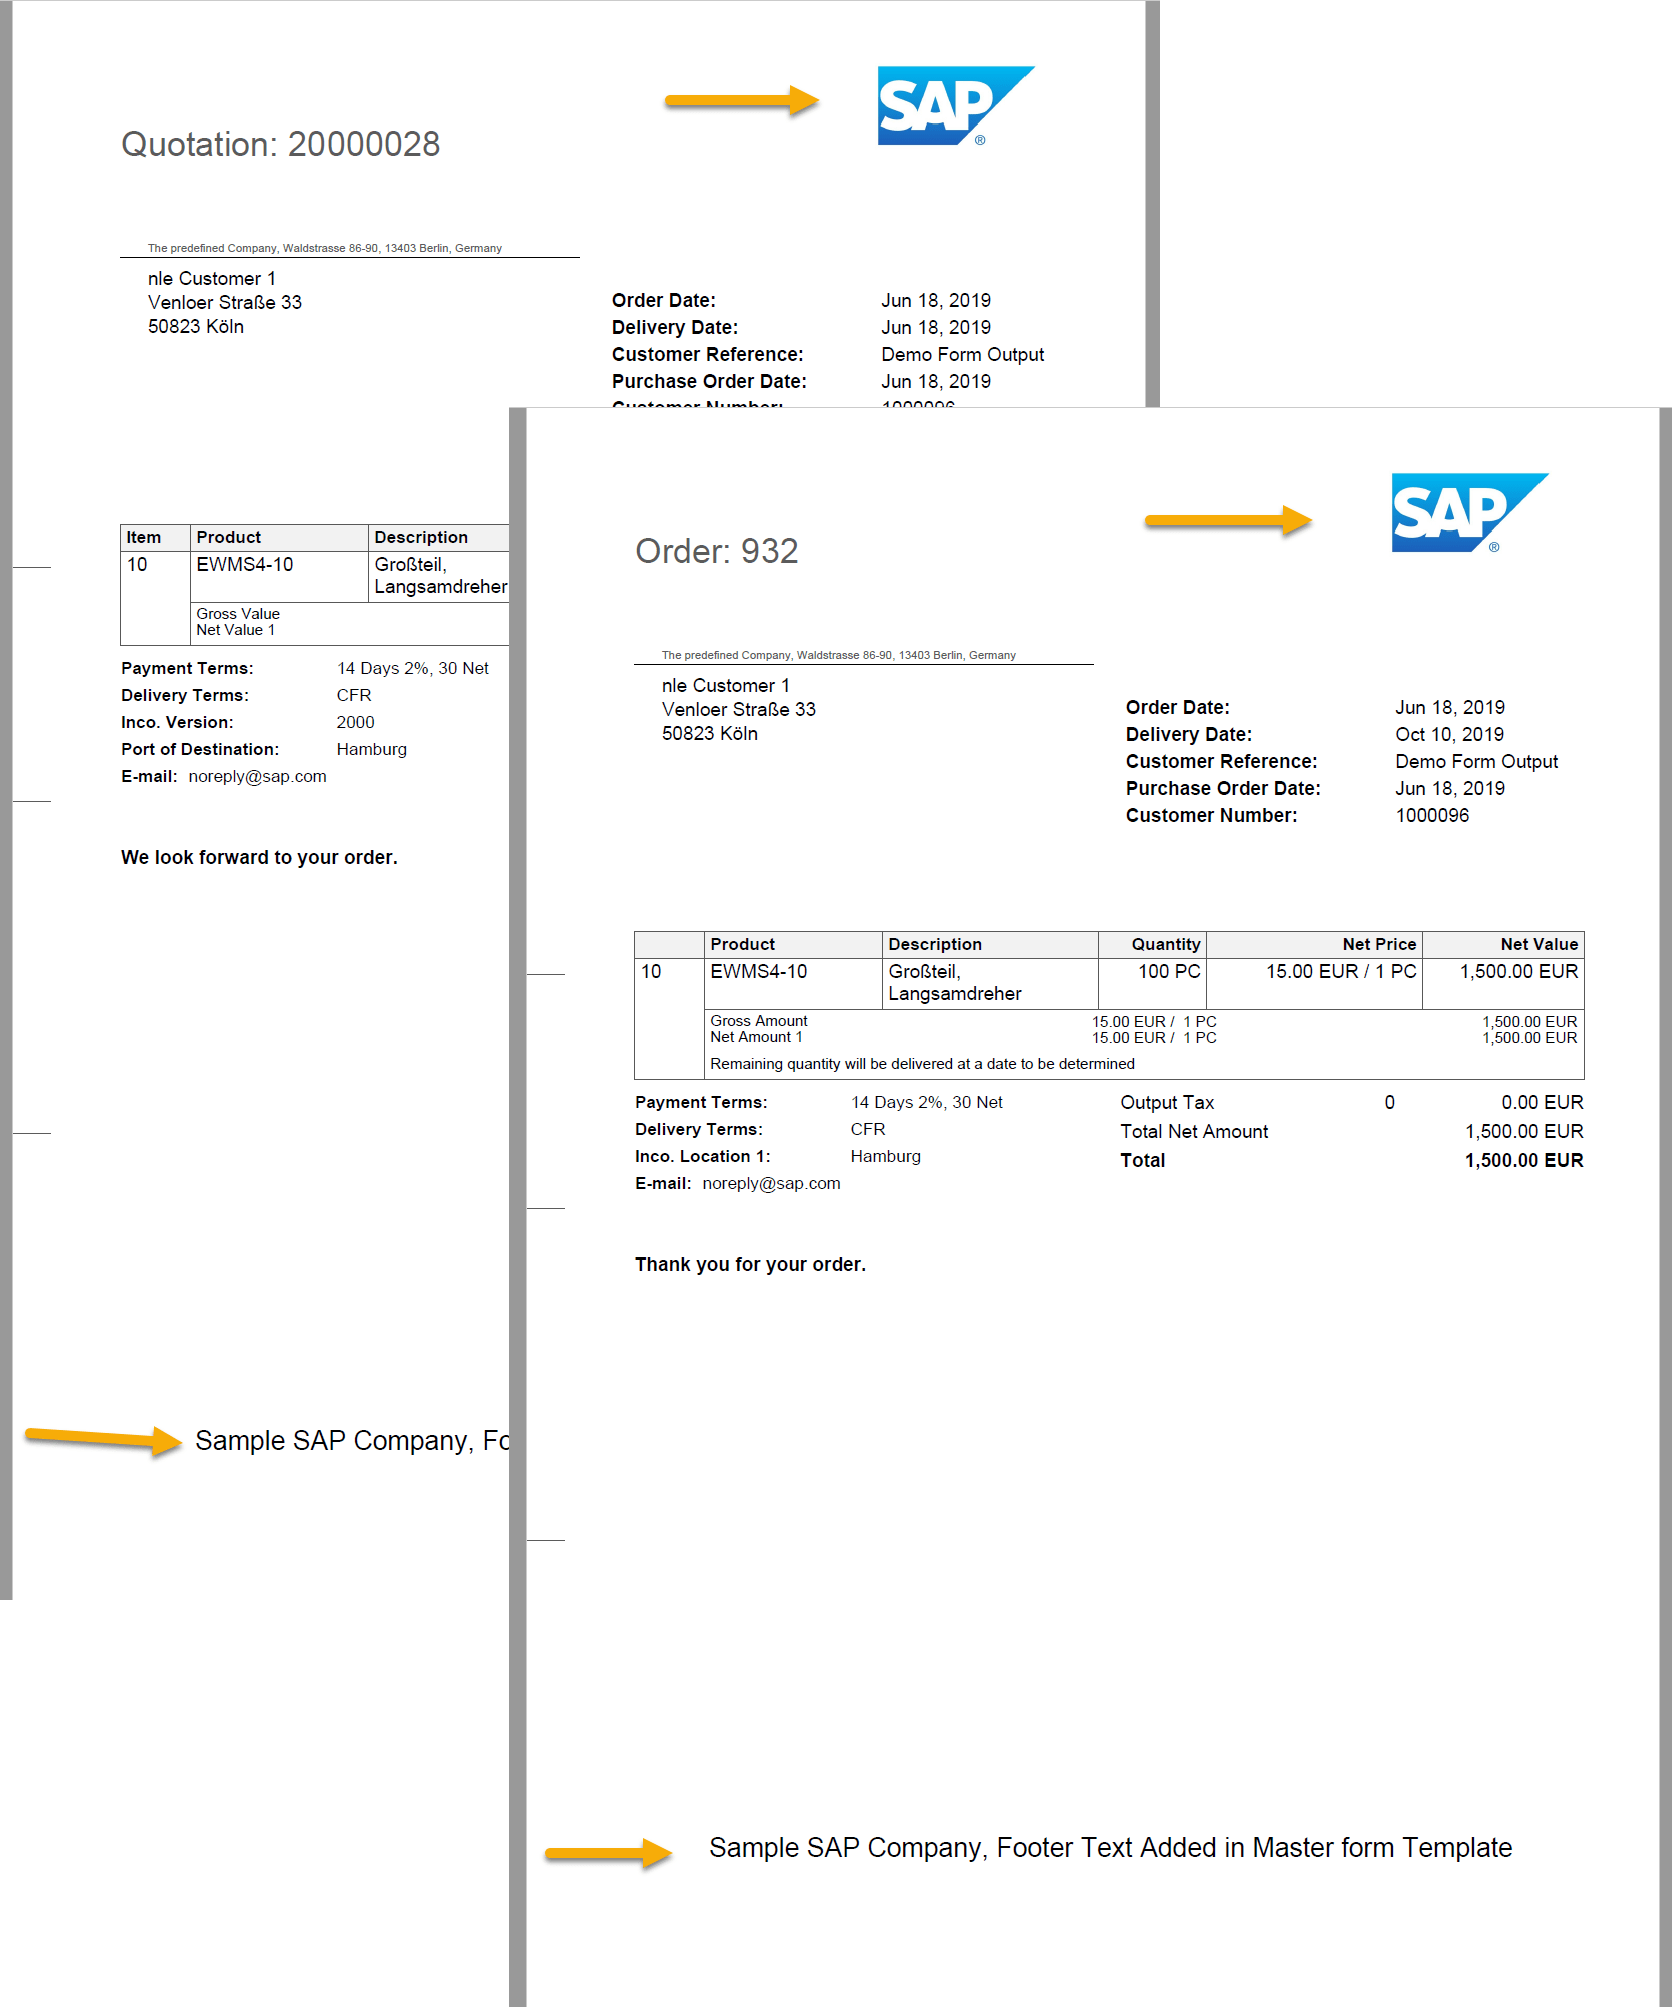 S4 HANA Output Management - Introduction, Master Form Layout